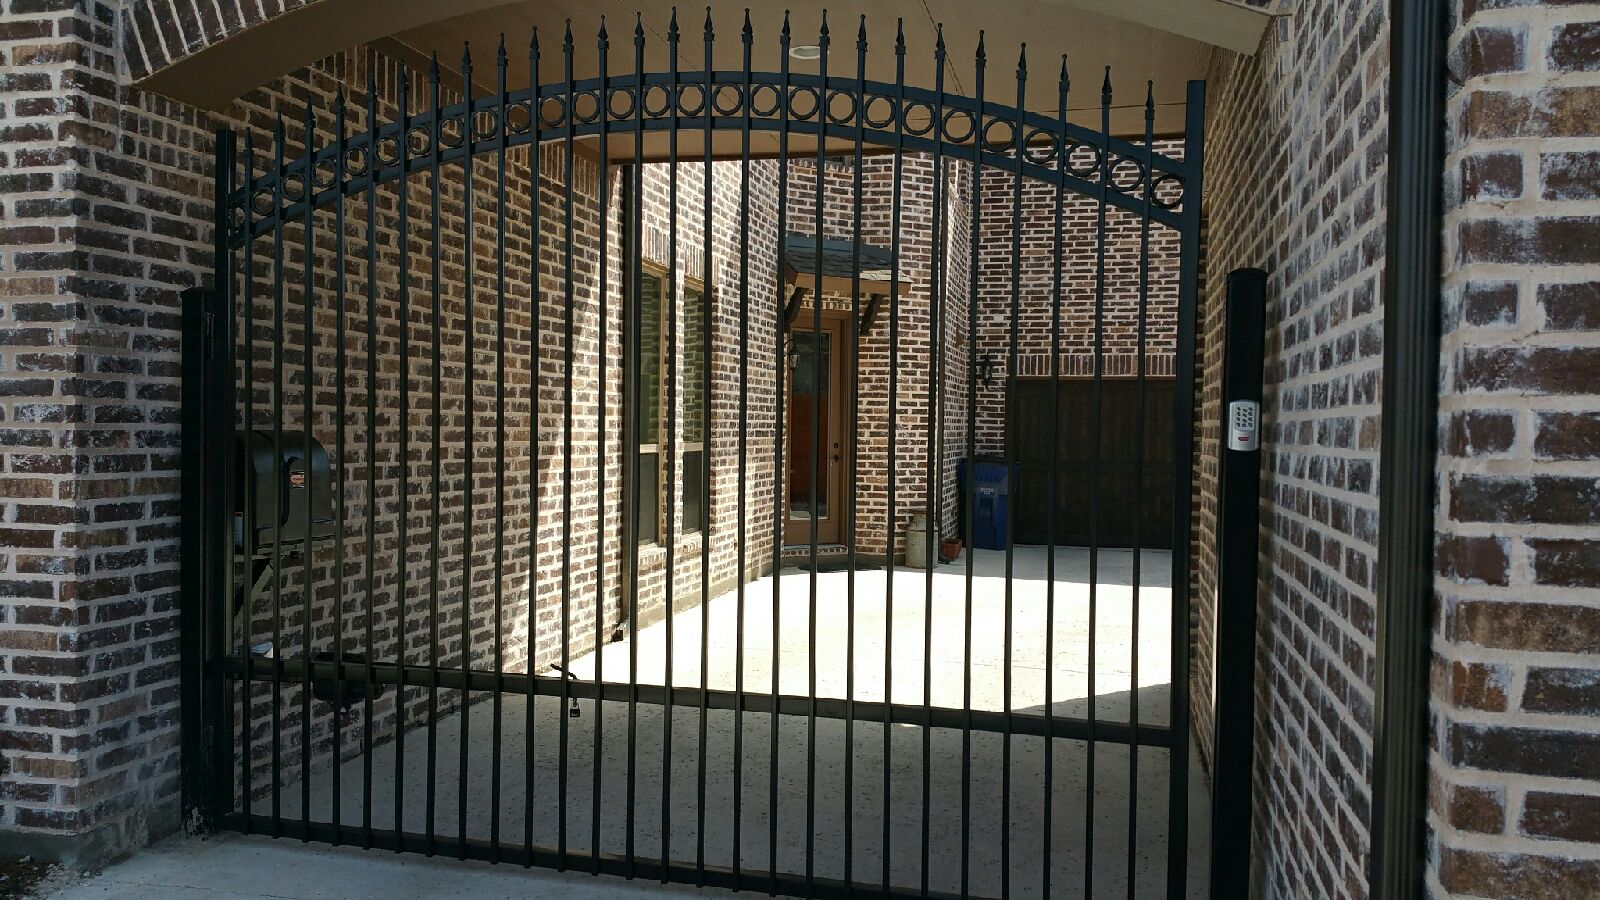 Driveway Doors Double Swing Gate With Circle Patterns Cut At An Angle To Account For The